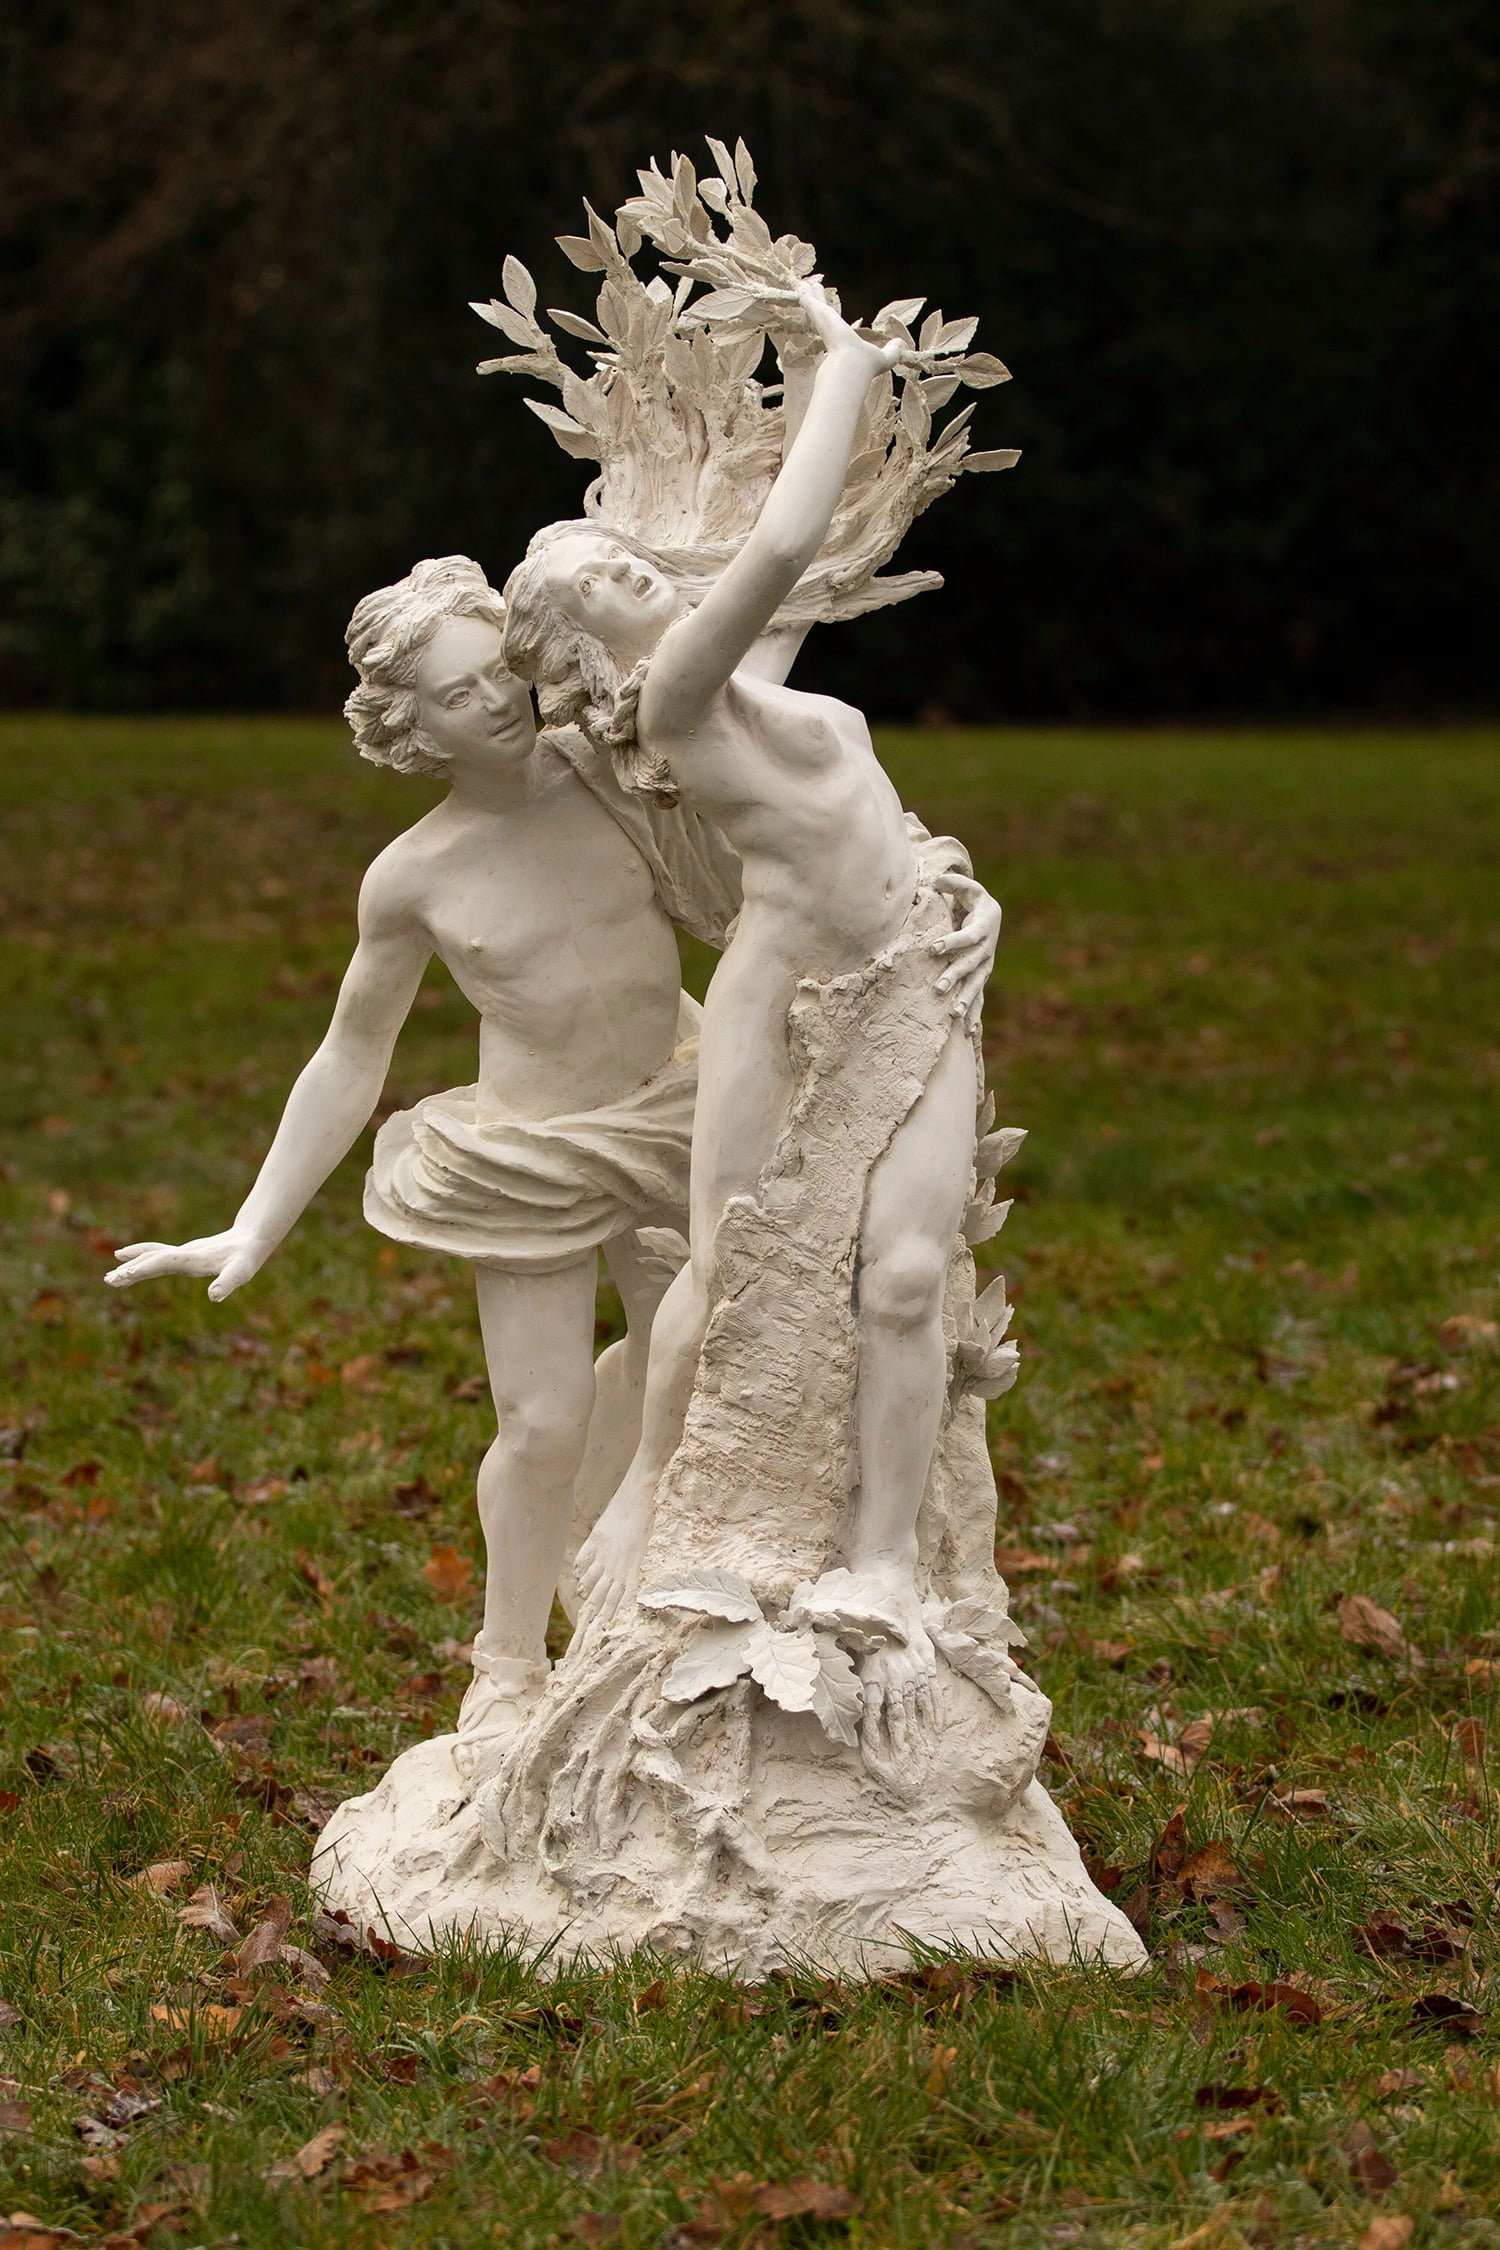 Cast stone replica Greek sculpture of Apollo and daphne on a grassy background